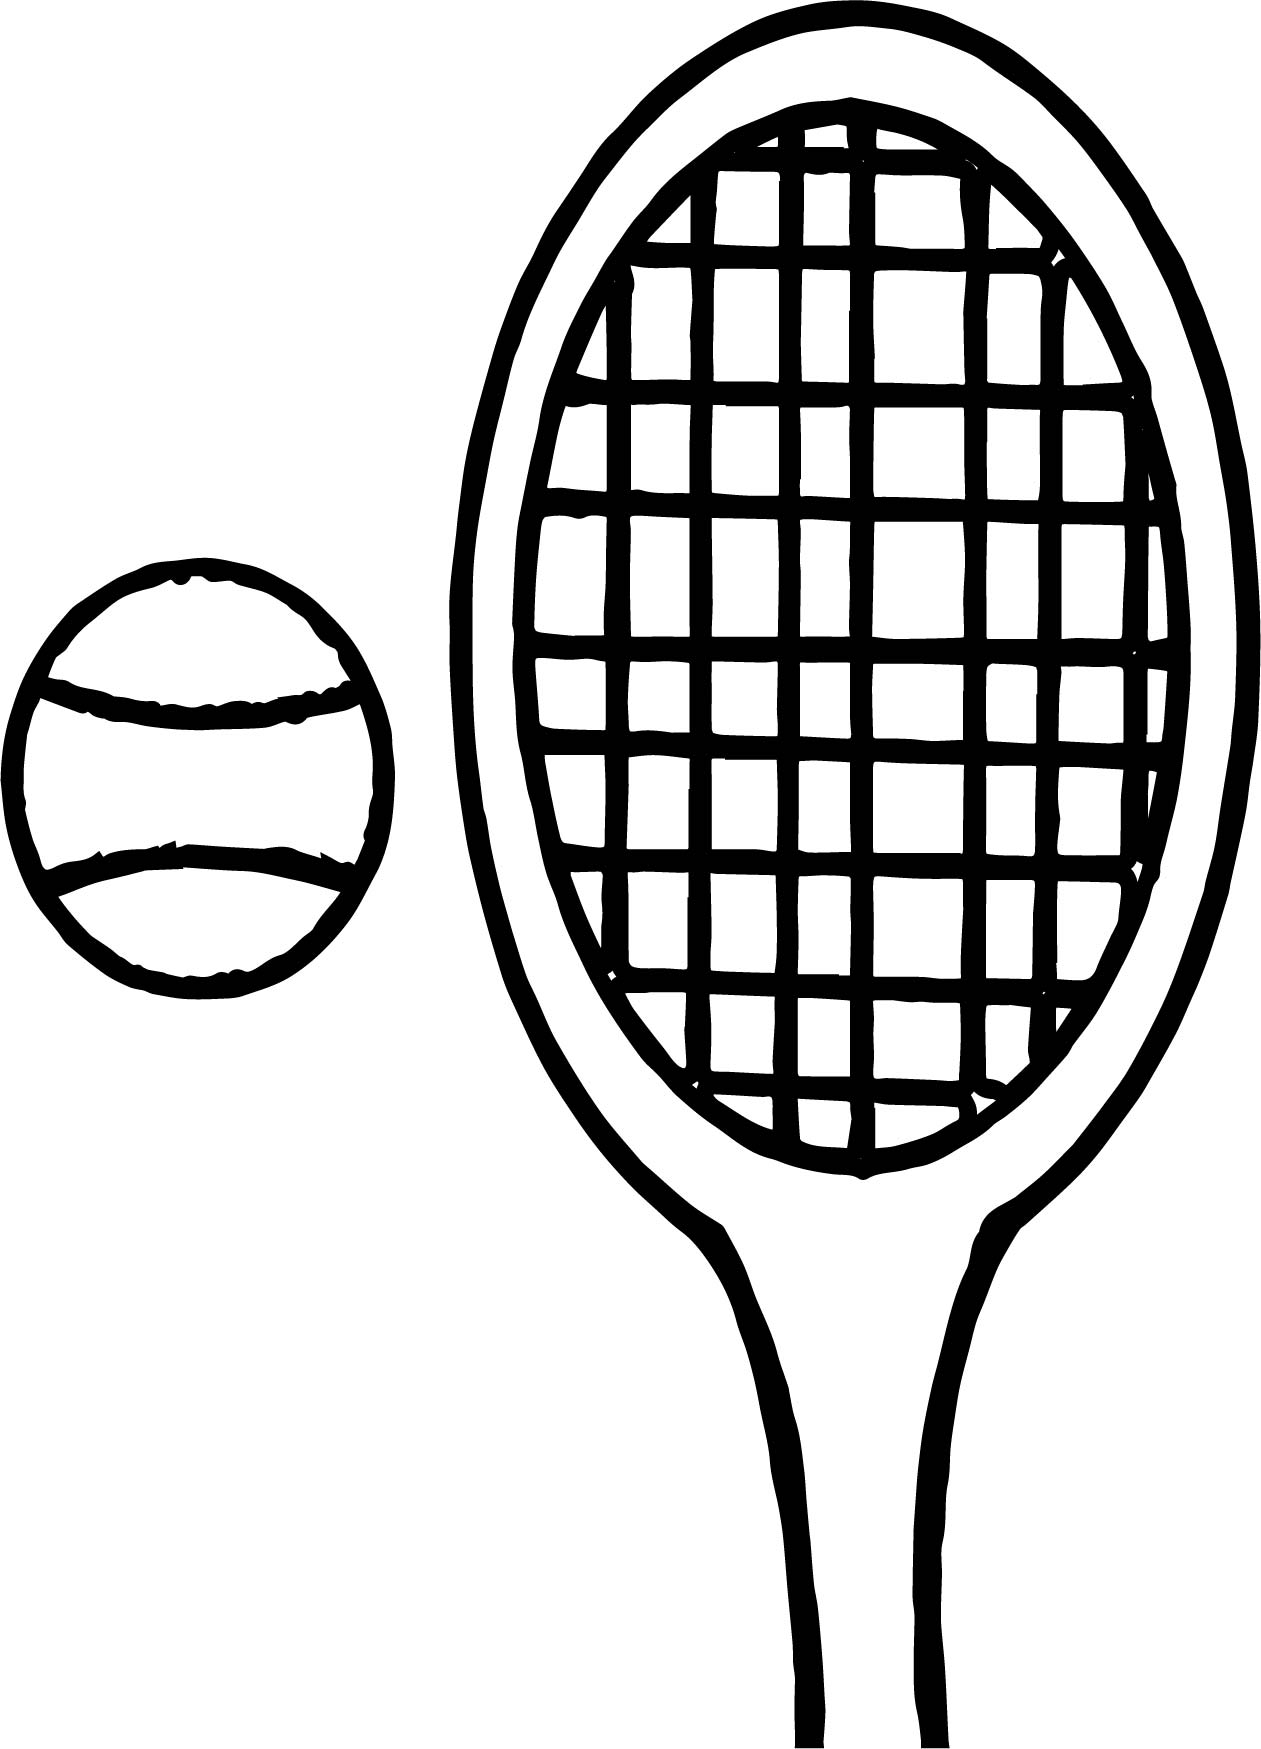 Tennis Crab Free Coloring Page Images